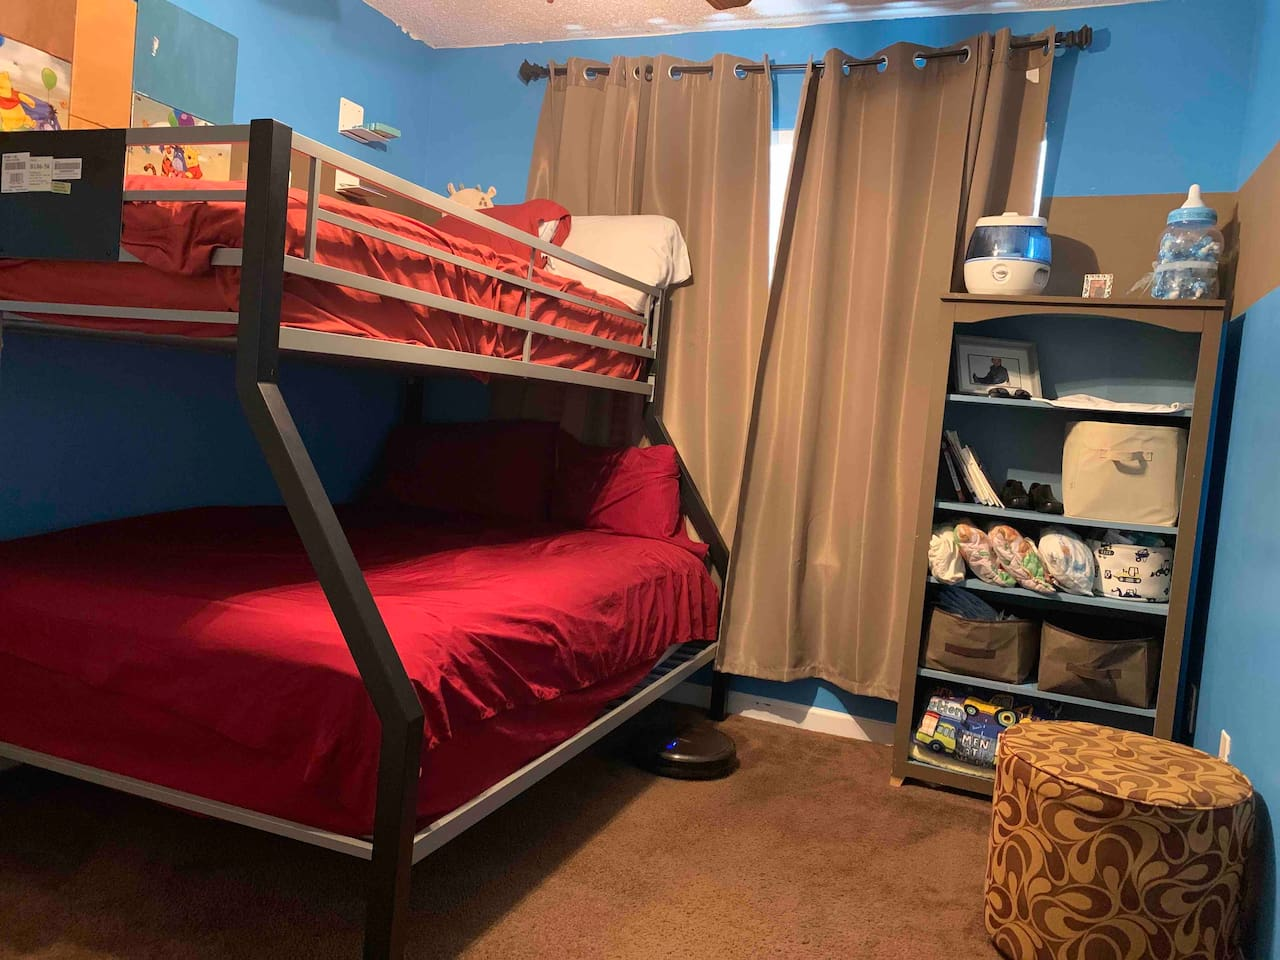 There is a bunk bed with a full size bed on the bottom and a twin size bed on top. This room also has a humidifier.